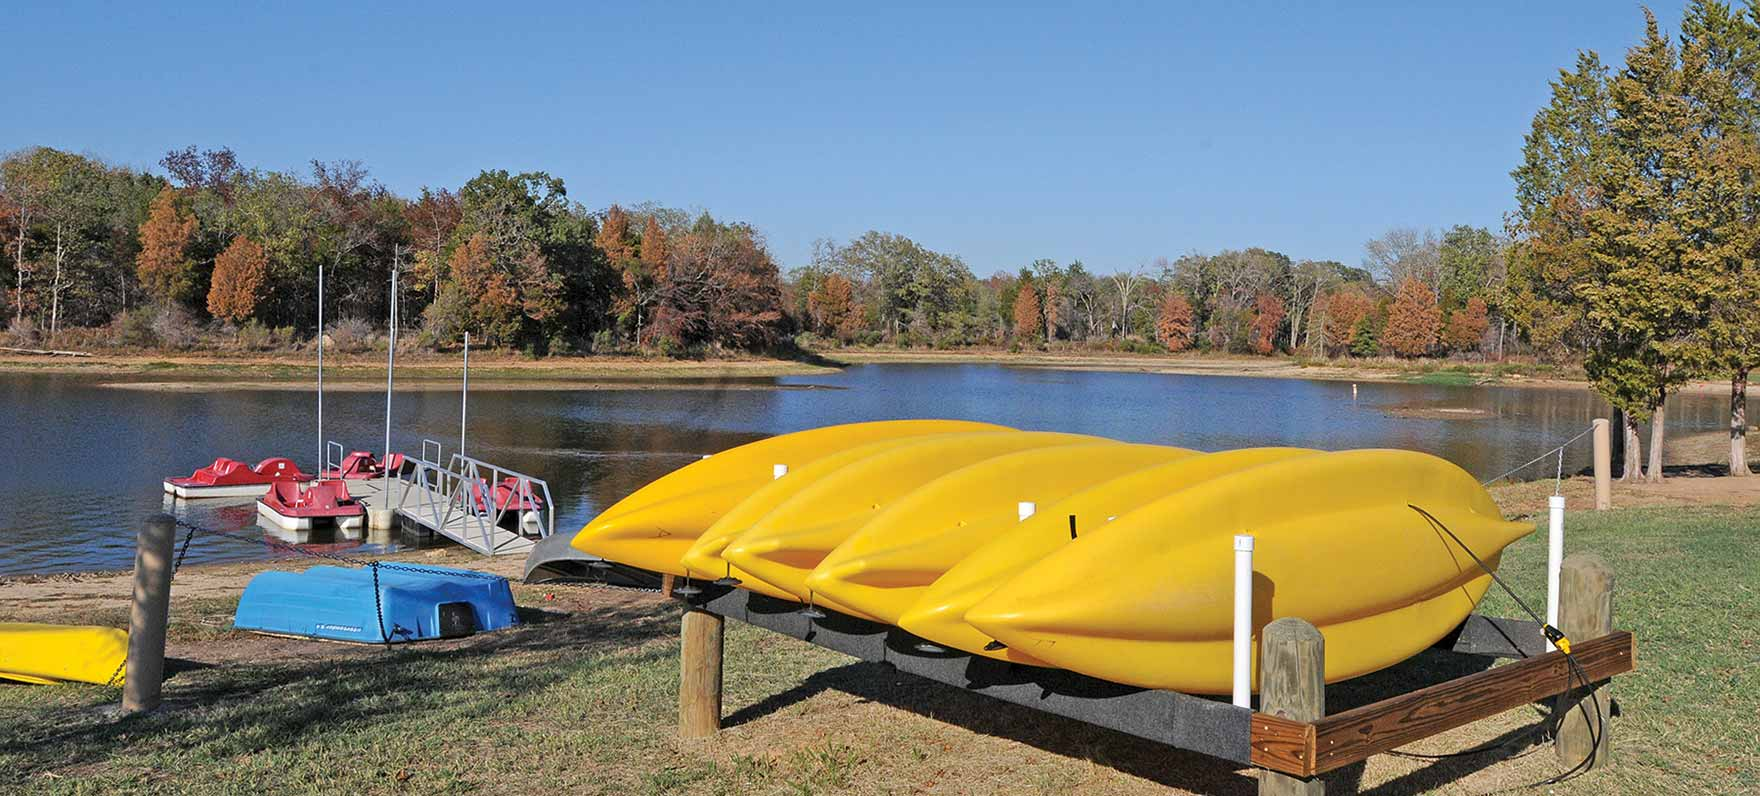 Kayak rental Purtis Creek State Park